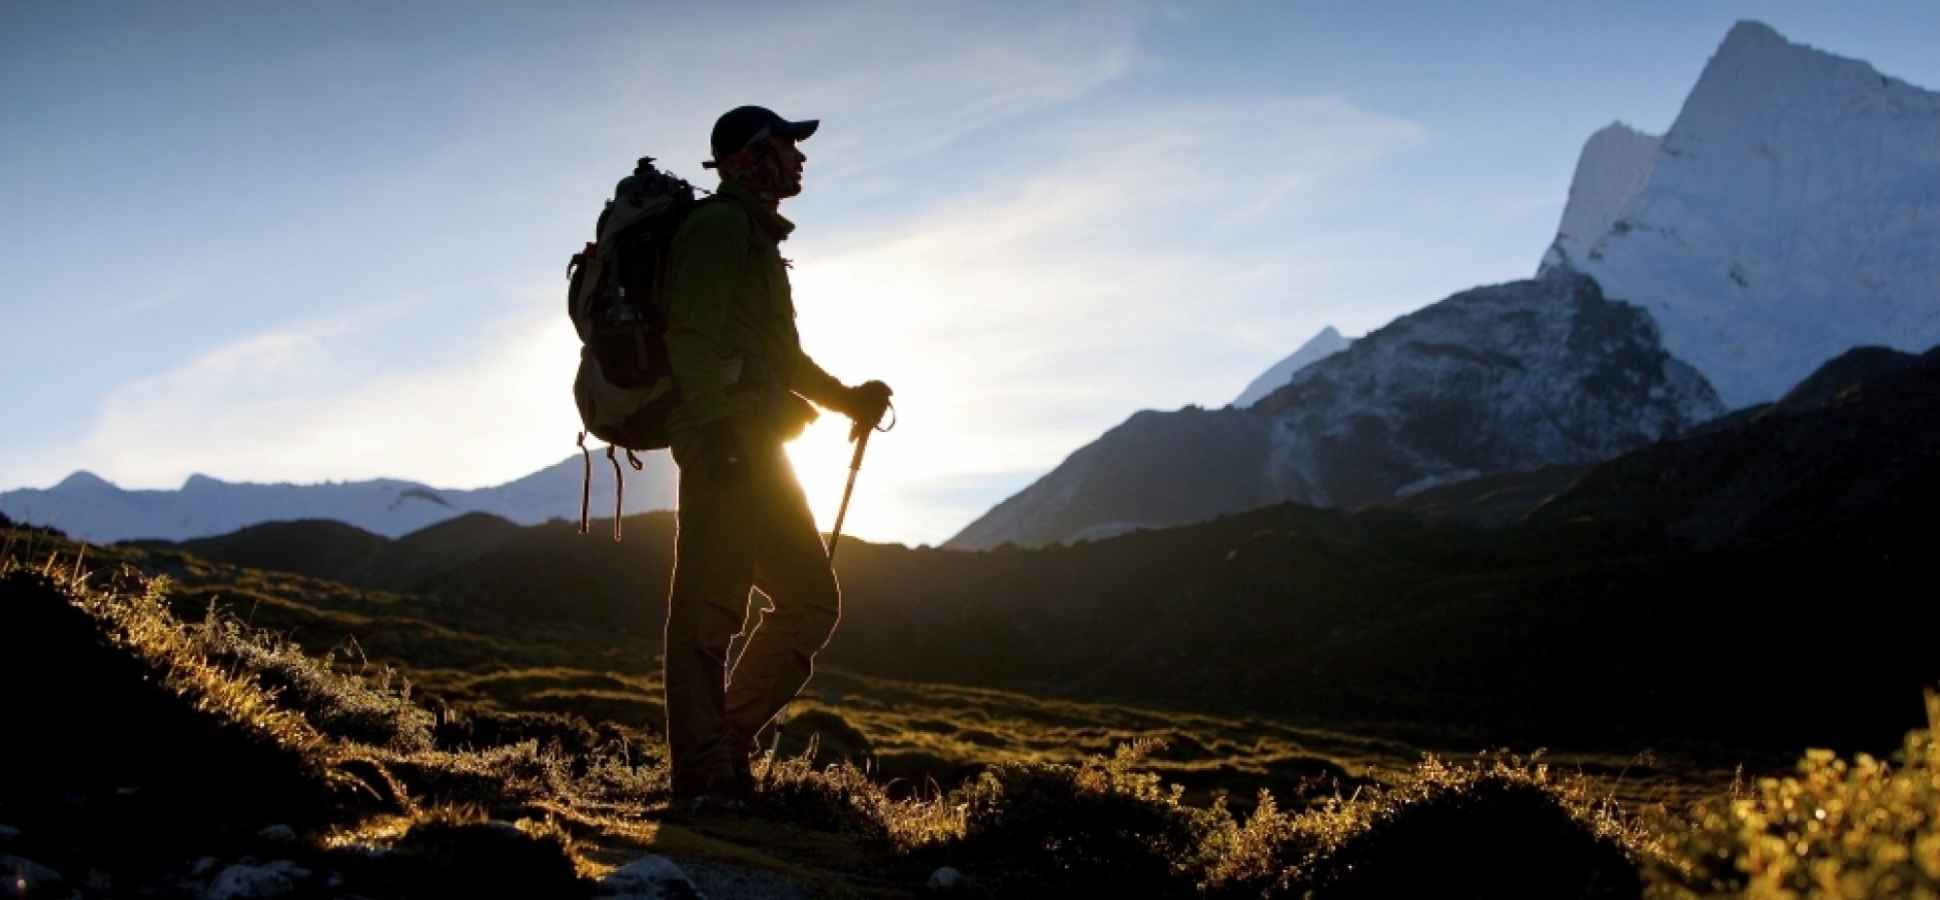 Ever Dream Of Quitting Your Job And Having Adventures? Here's Some Wisdom From The Backpacking Trail